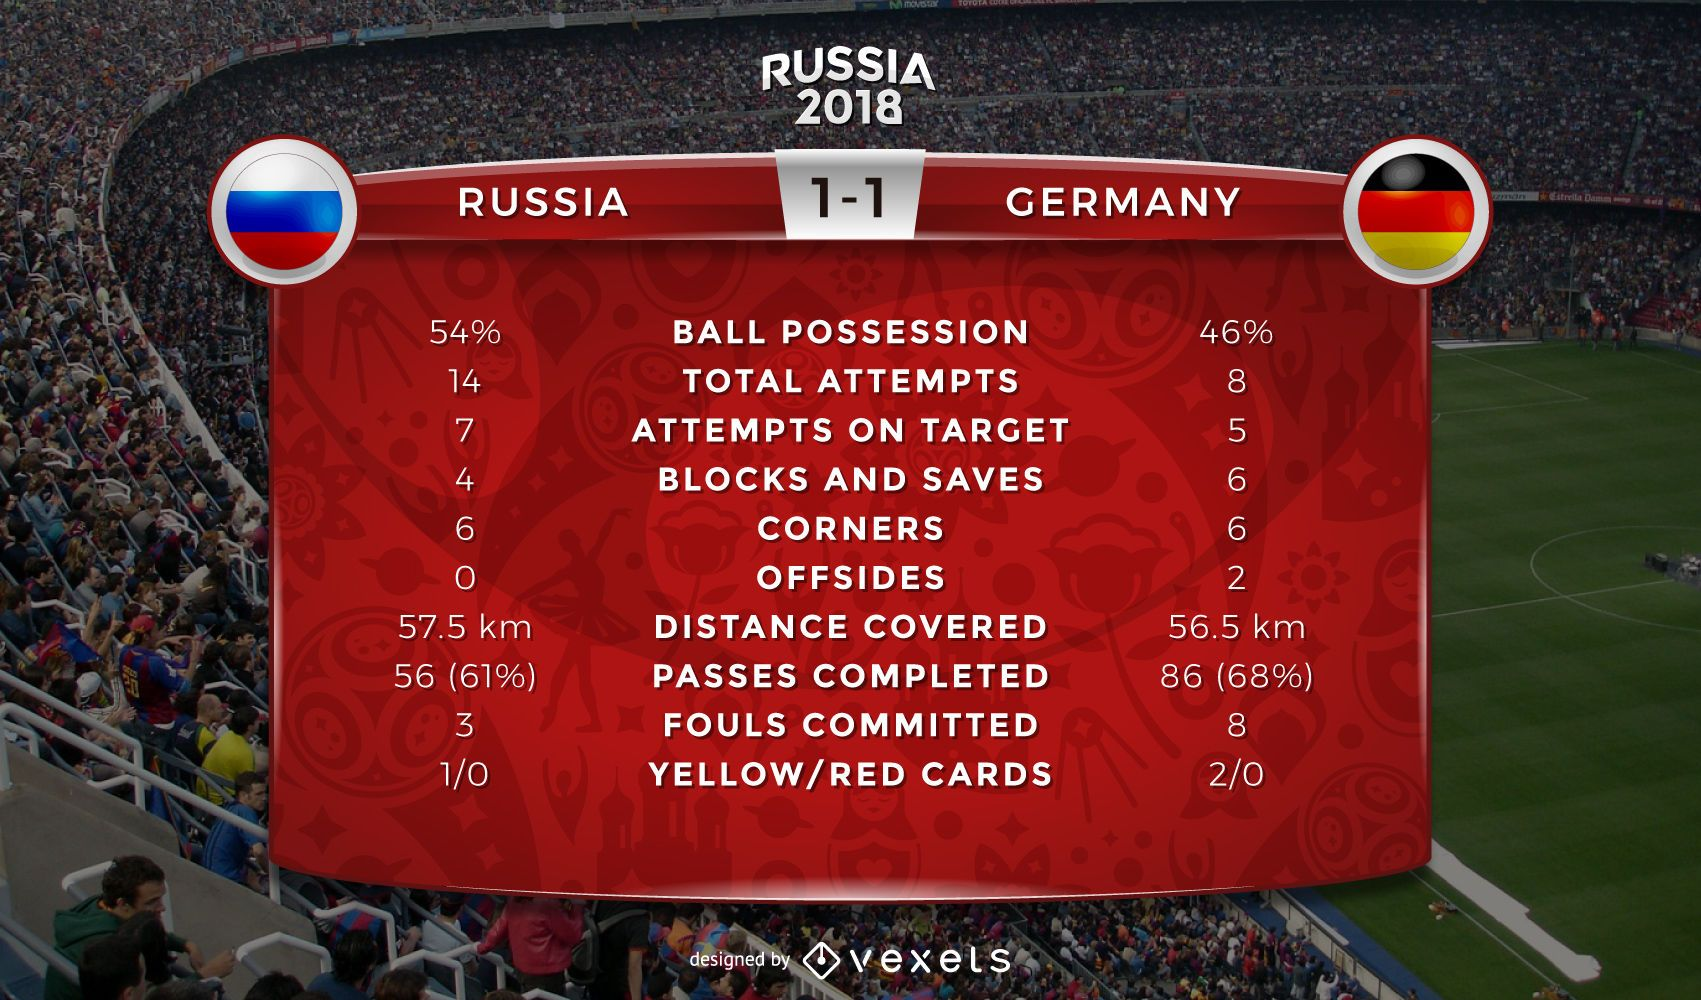 Russia 2018 World Cup game statistics